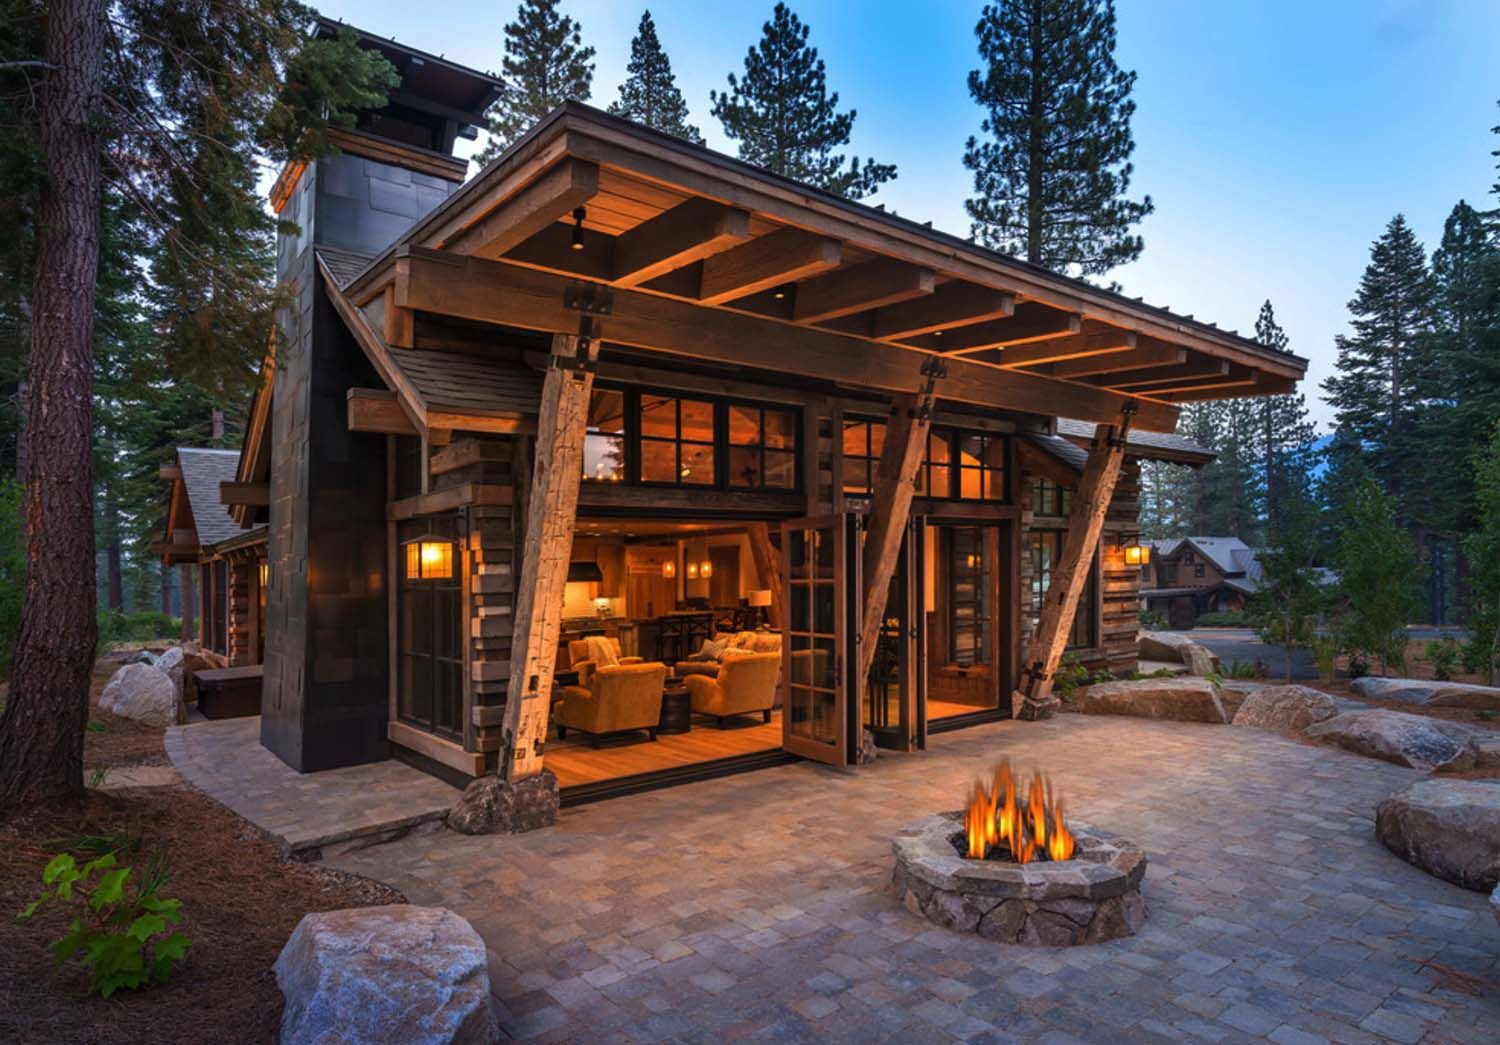 cozy mountain style cabin getaway in martis camp on modern cozy mountain home design ideas id=37458